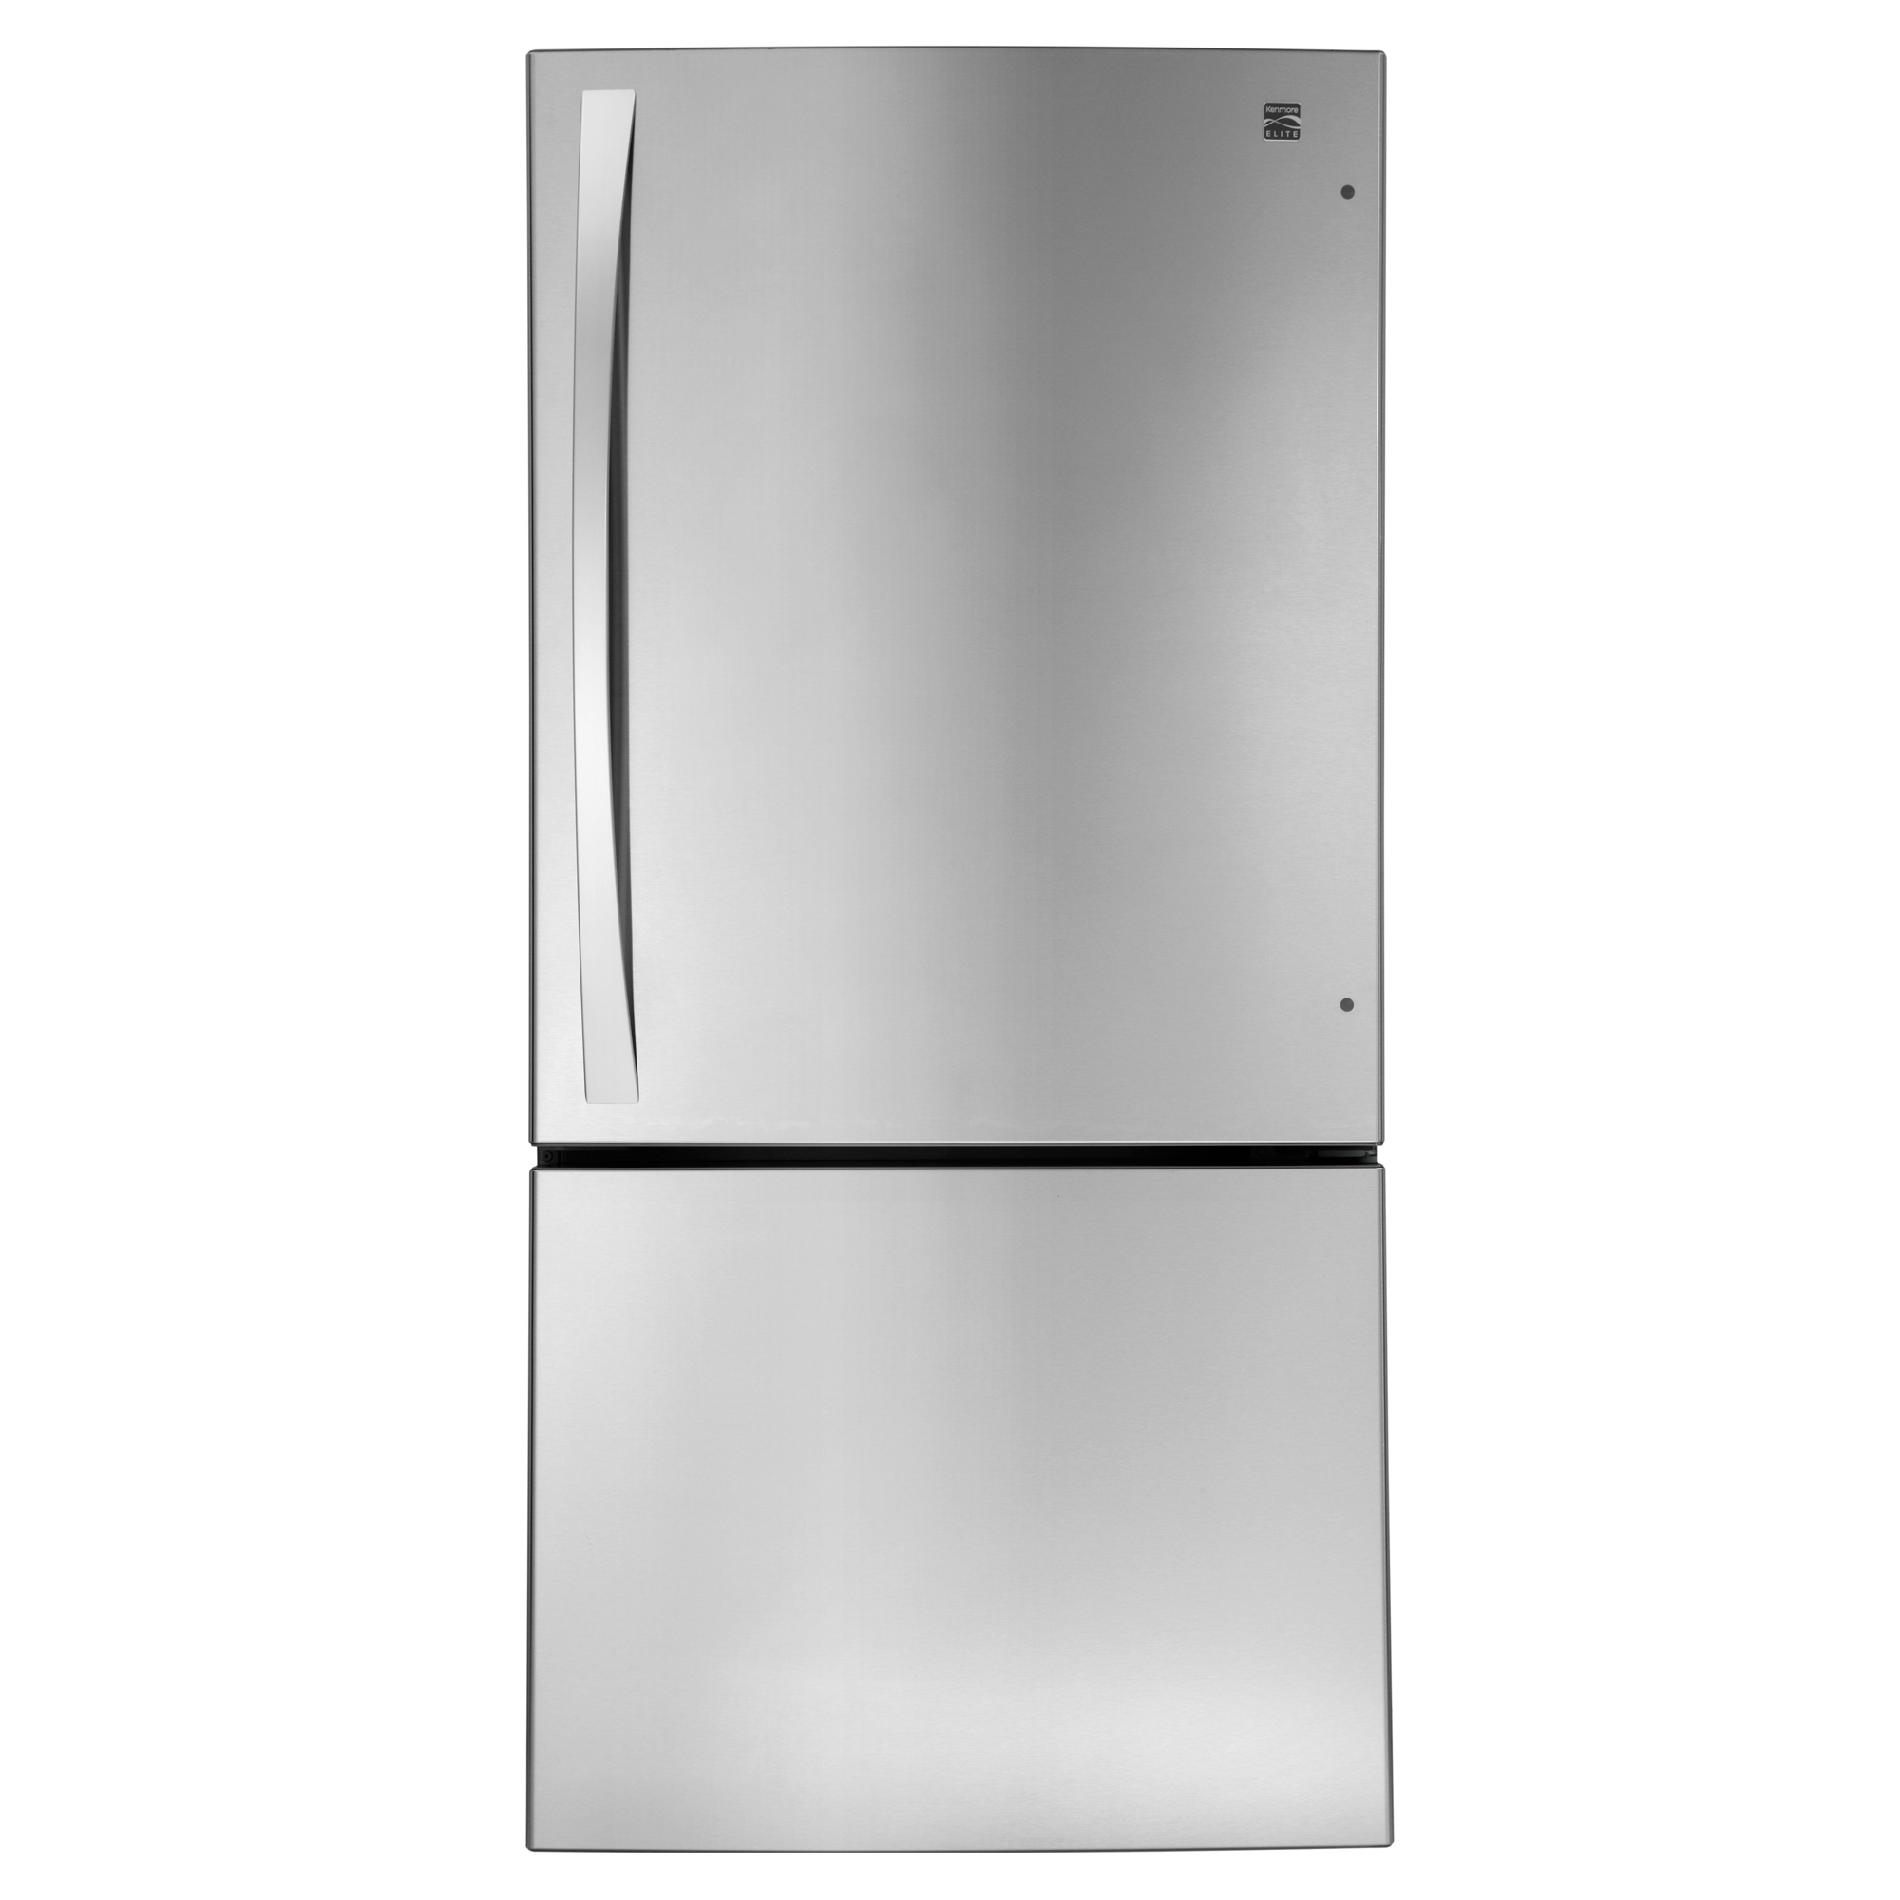 Kmart Freezer Compact Refrigerators Buy Compact Refrigerators In